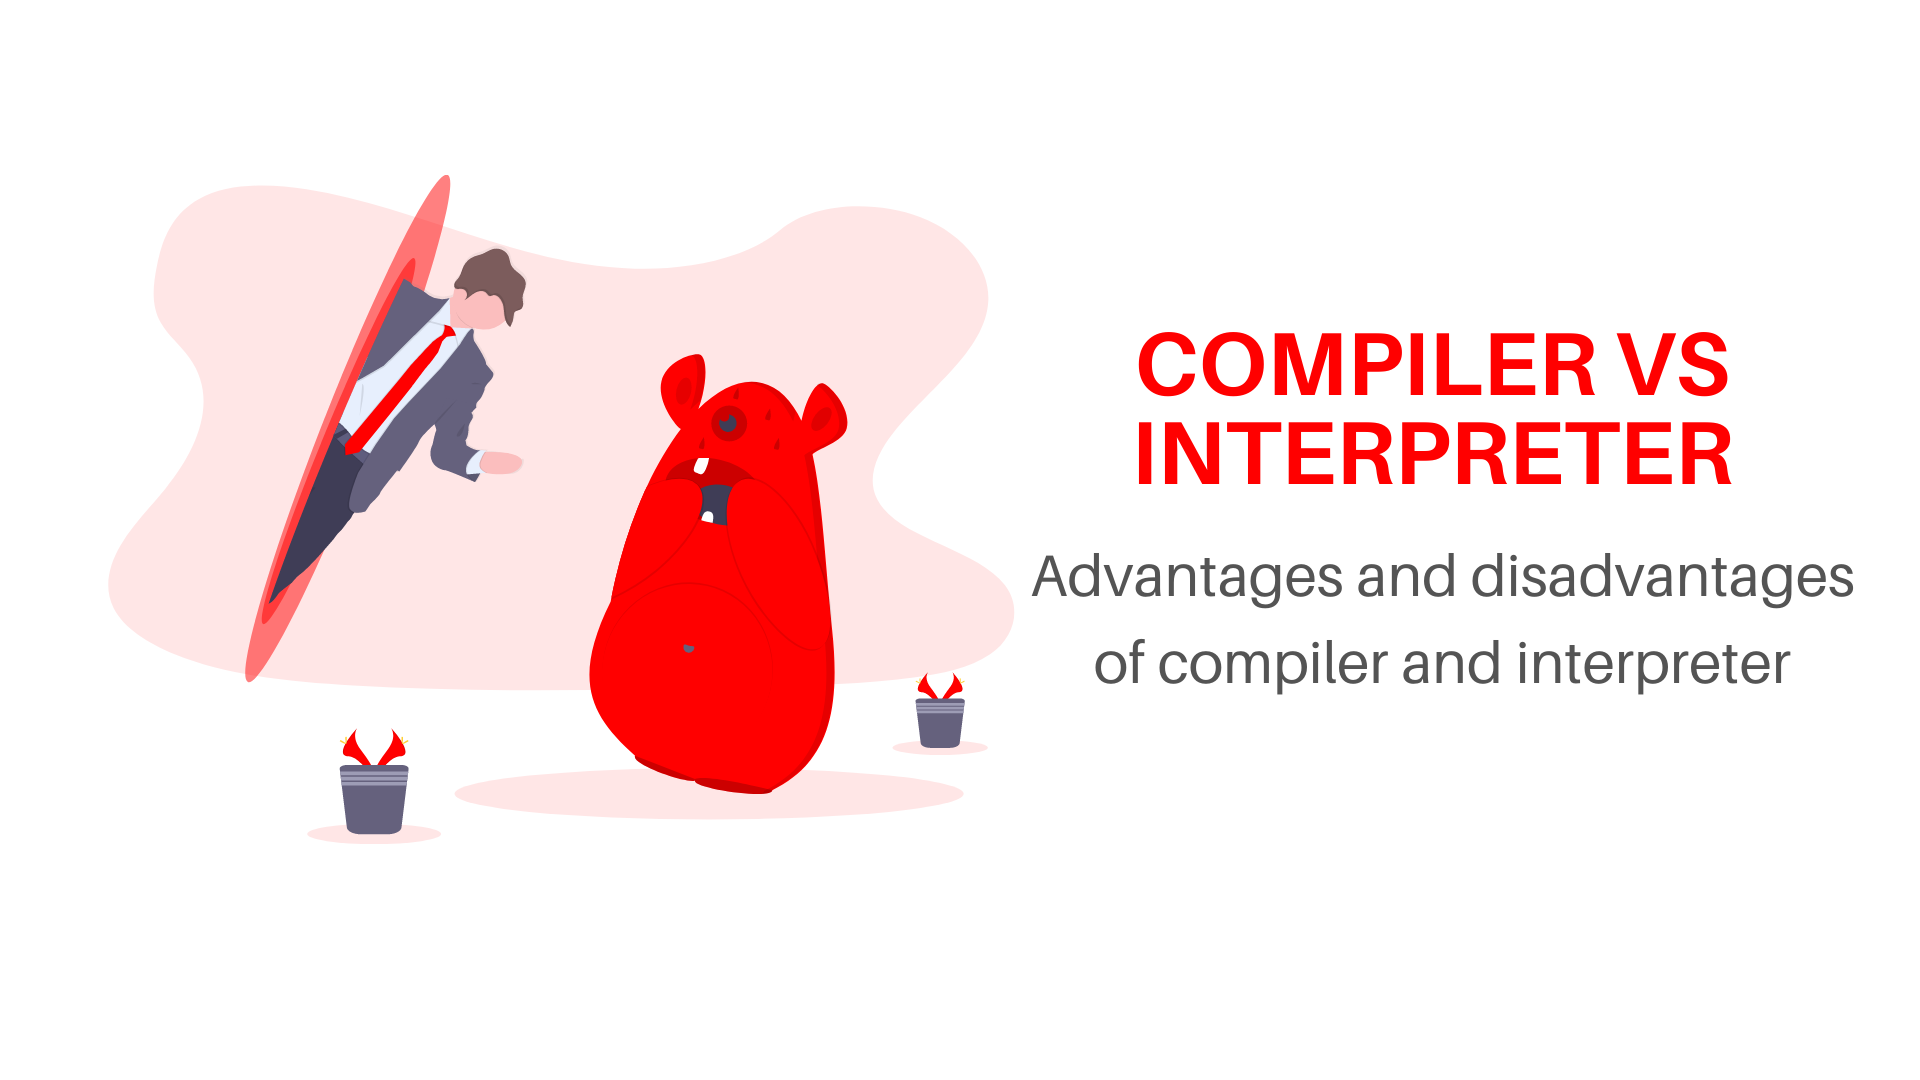 Advantages and disadvantages of compiler and interpreter